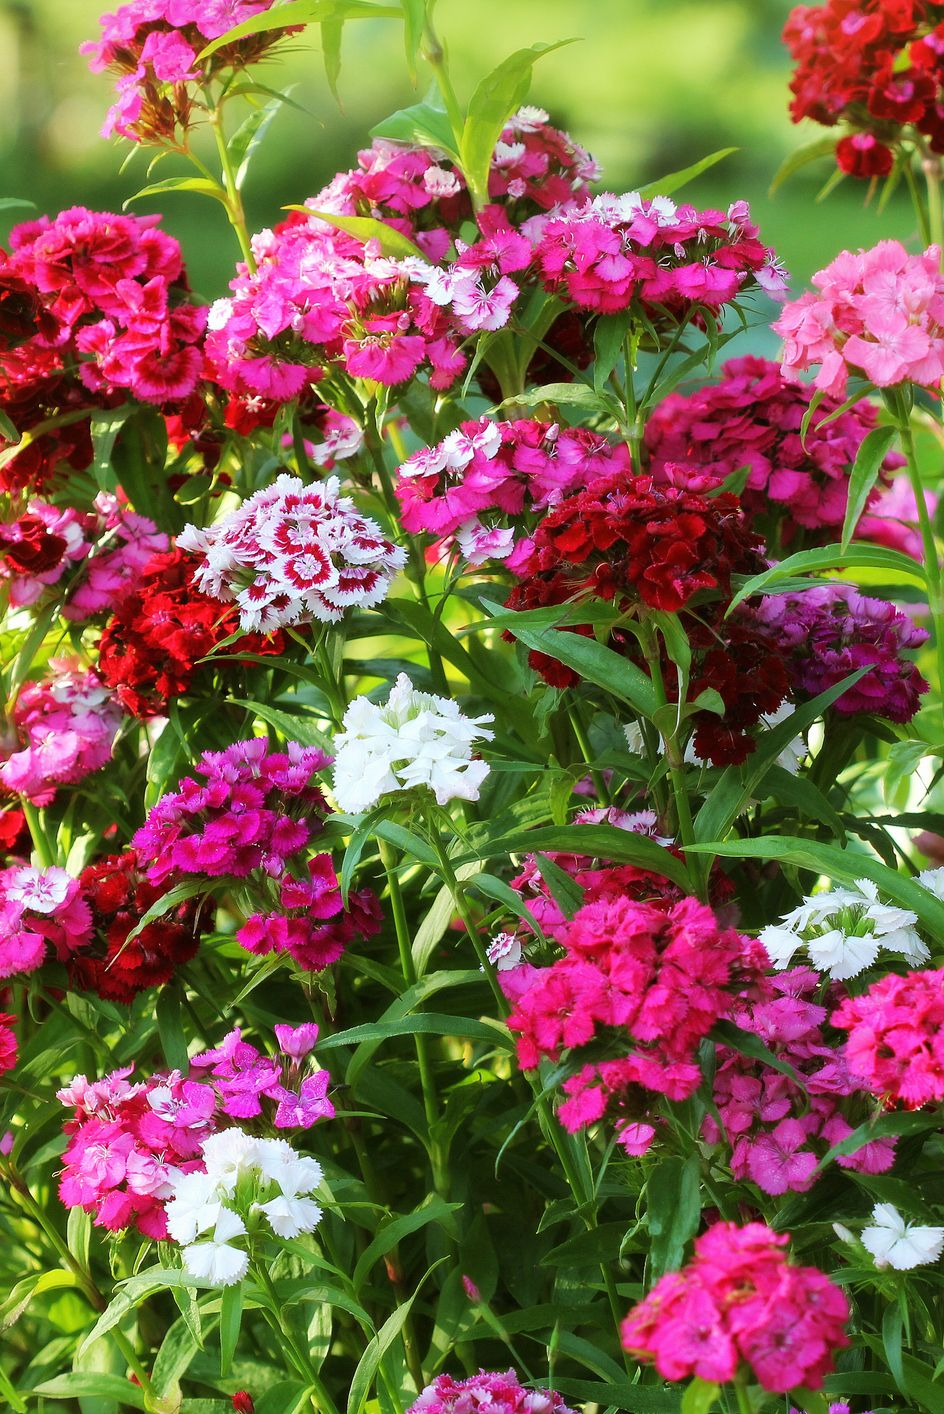 The Only Flowers You Need For A Standout Fall Garden In 2020 Autumn Garden Fall Flowers Dianthus Flowers